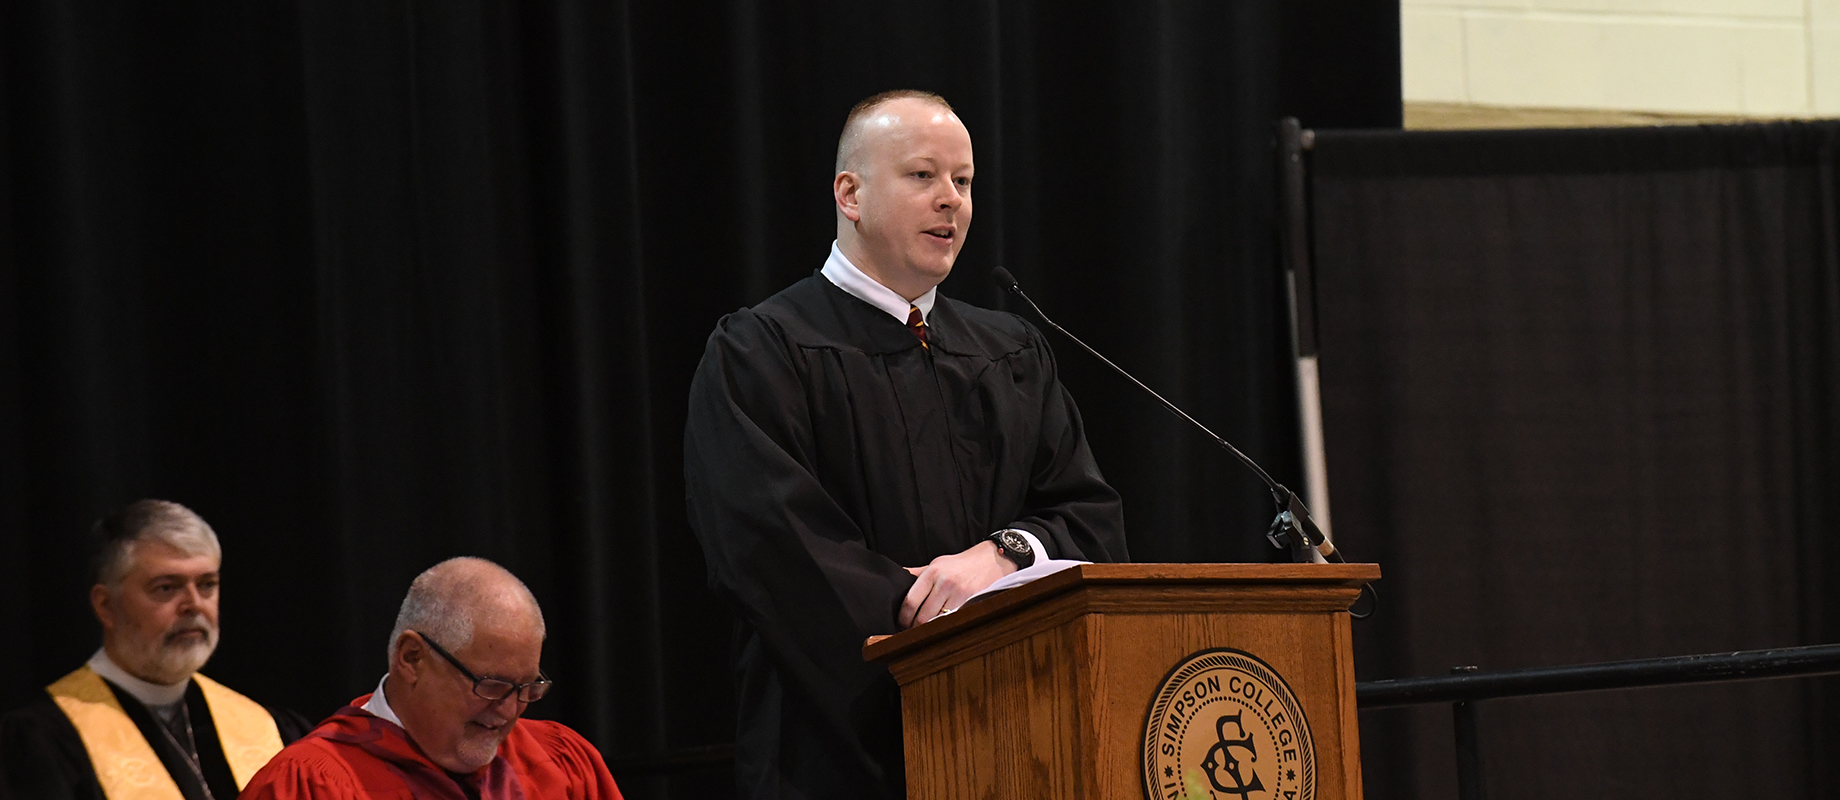 Cole Hippen delivered the graduate student address at the 2019 commencement ceremony.